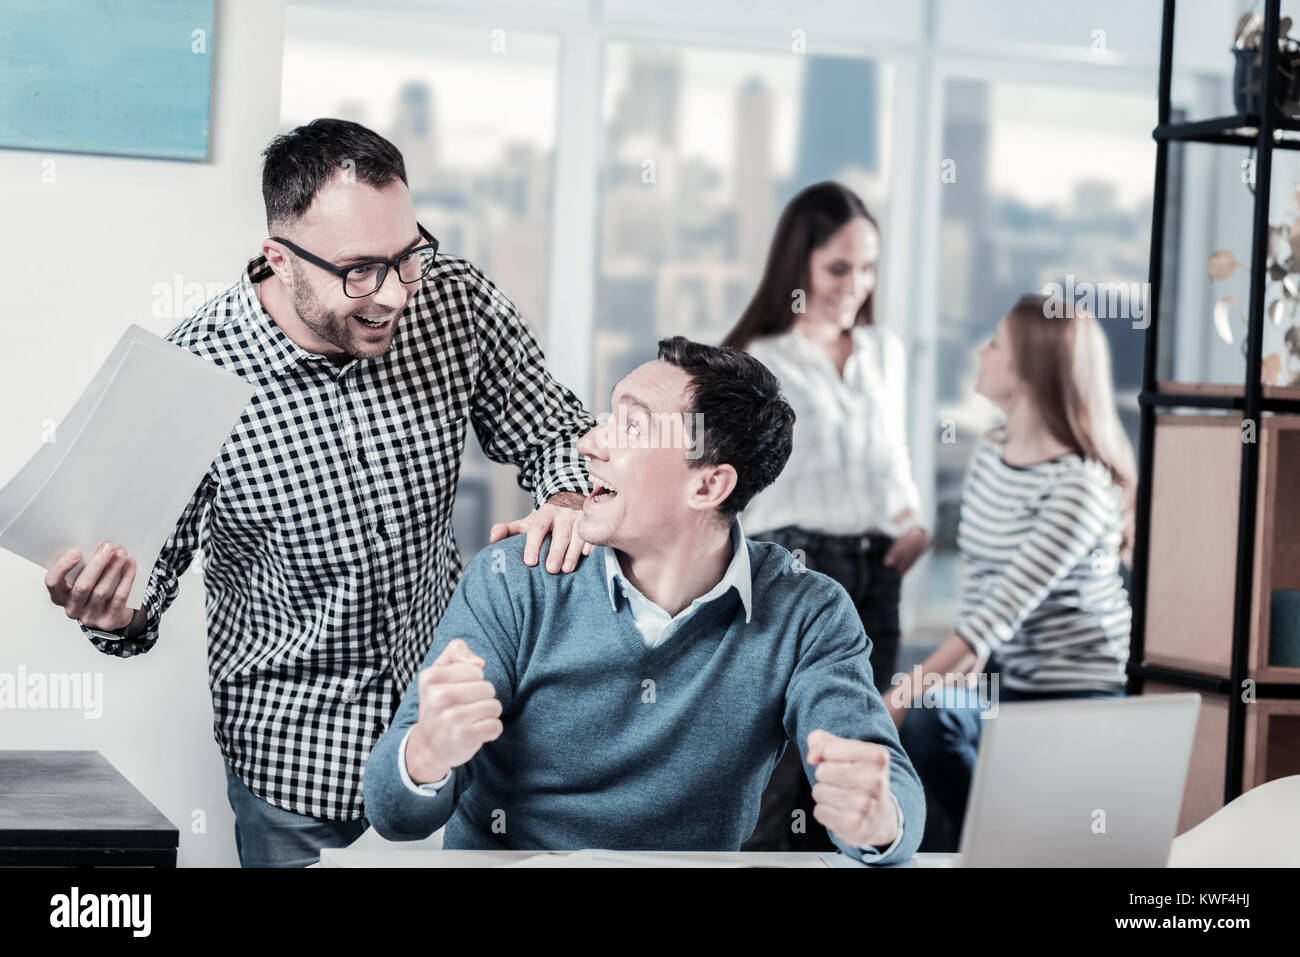 Incredibly situation. Friendly amazed nice-looking colleagues rejoicing together having fun and smiling. - Stock Image